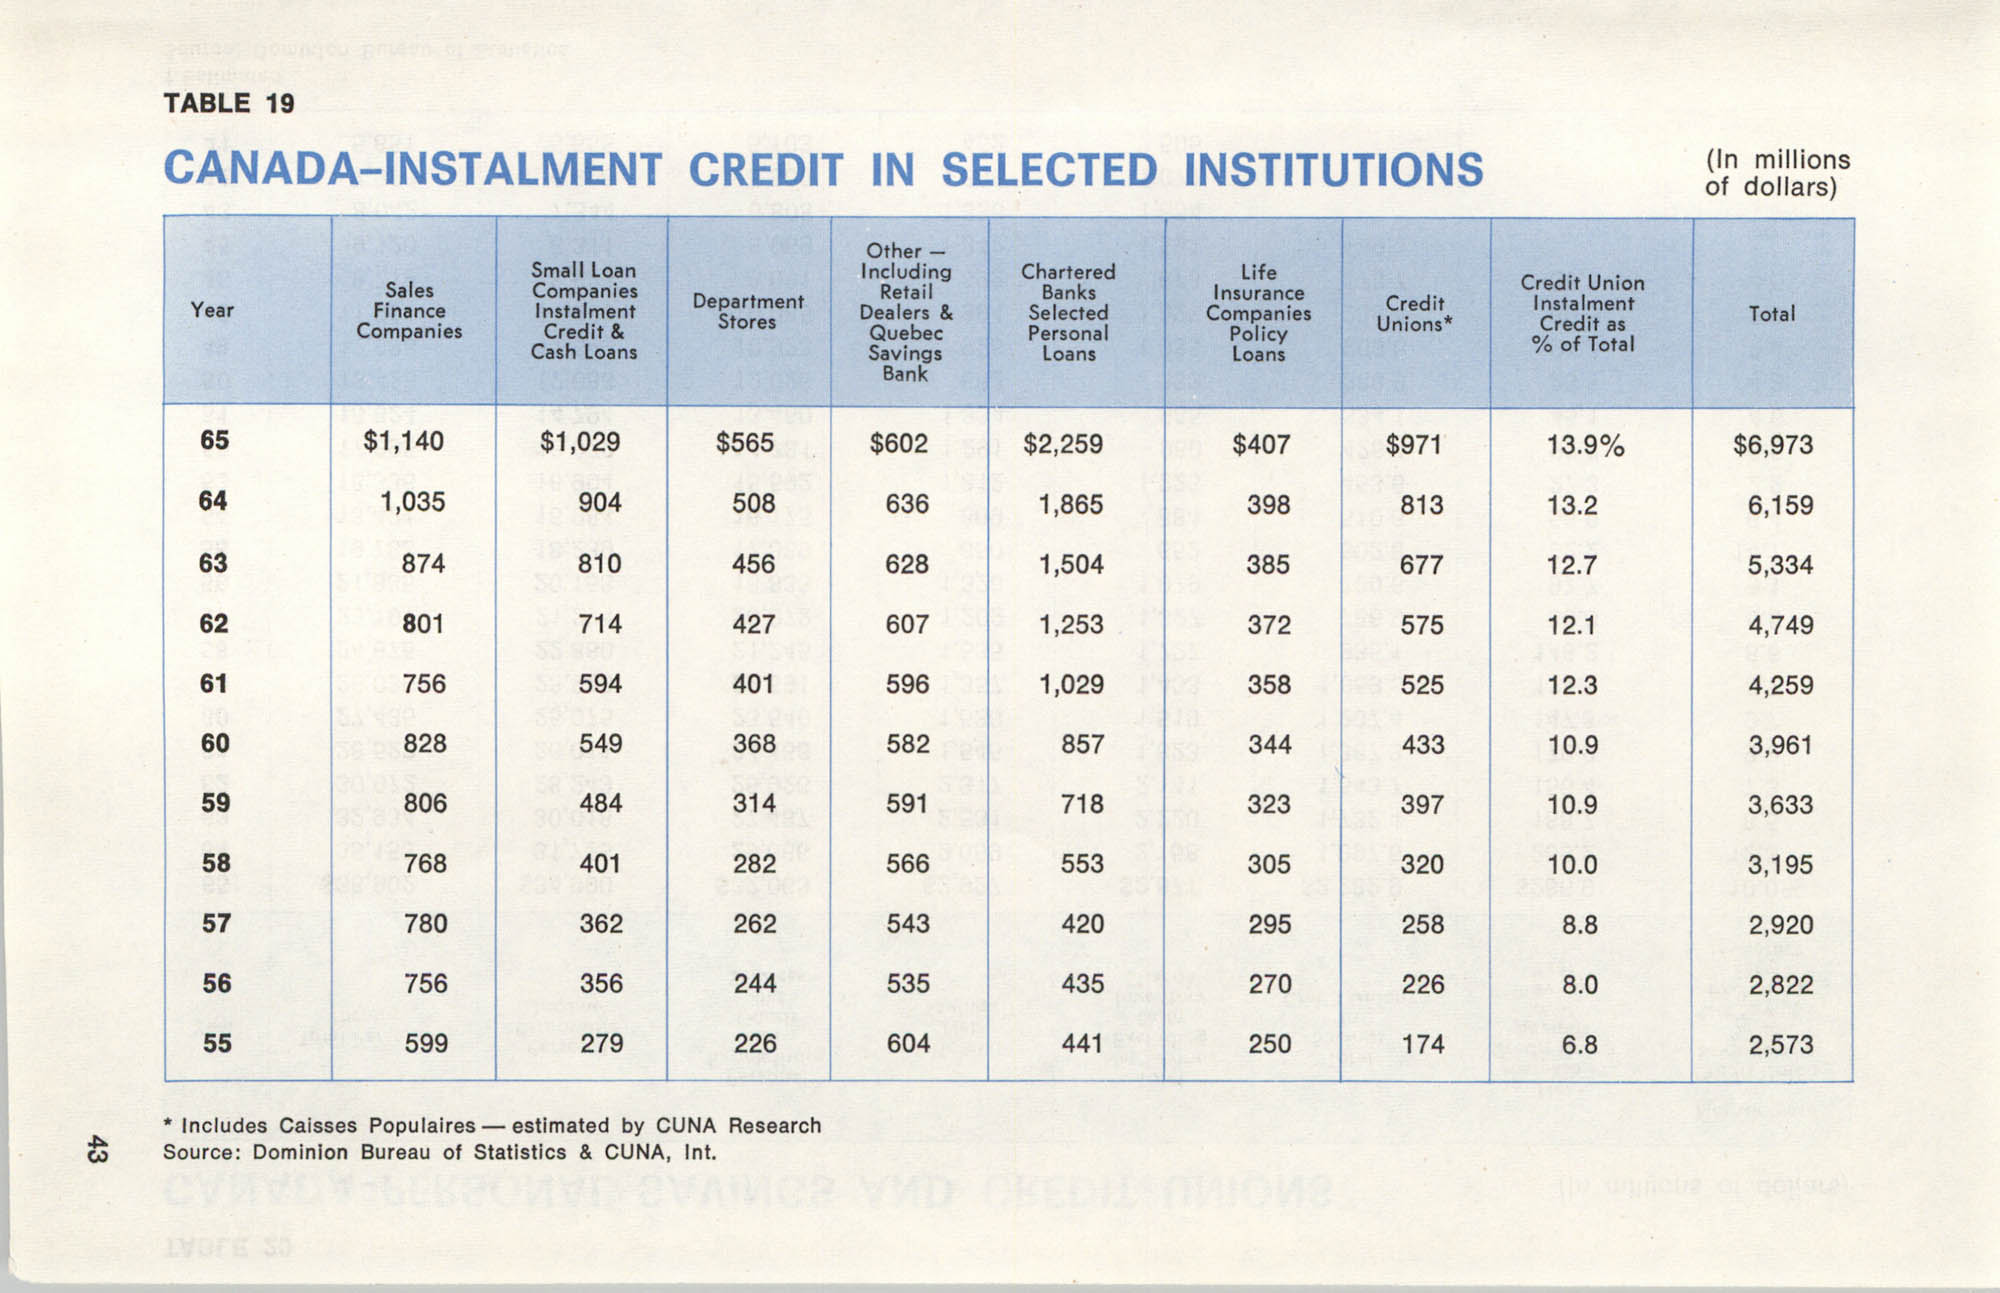 International Credit Union Yearbook, Page 43